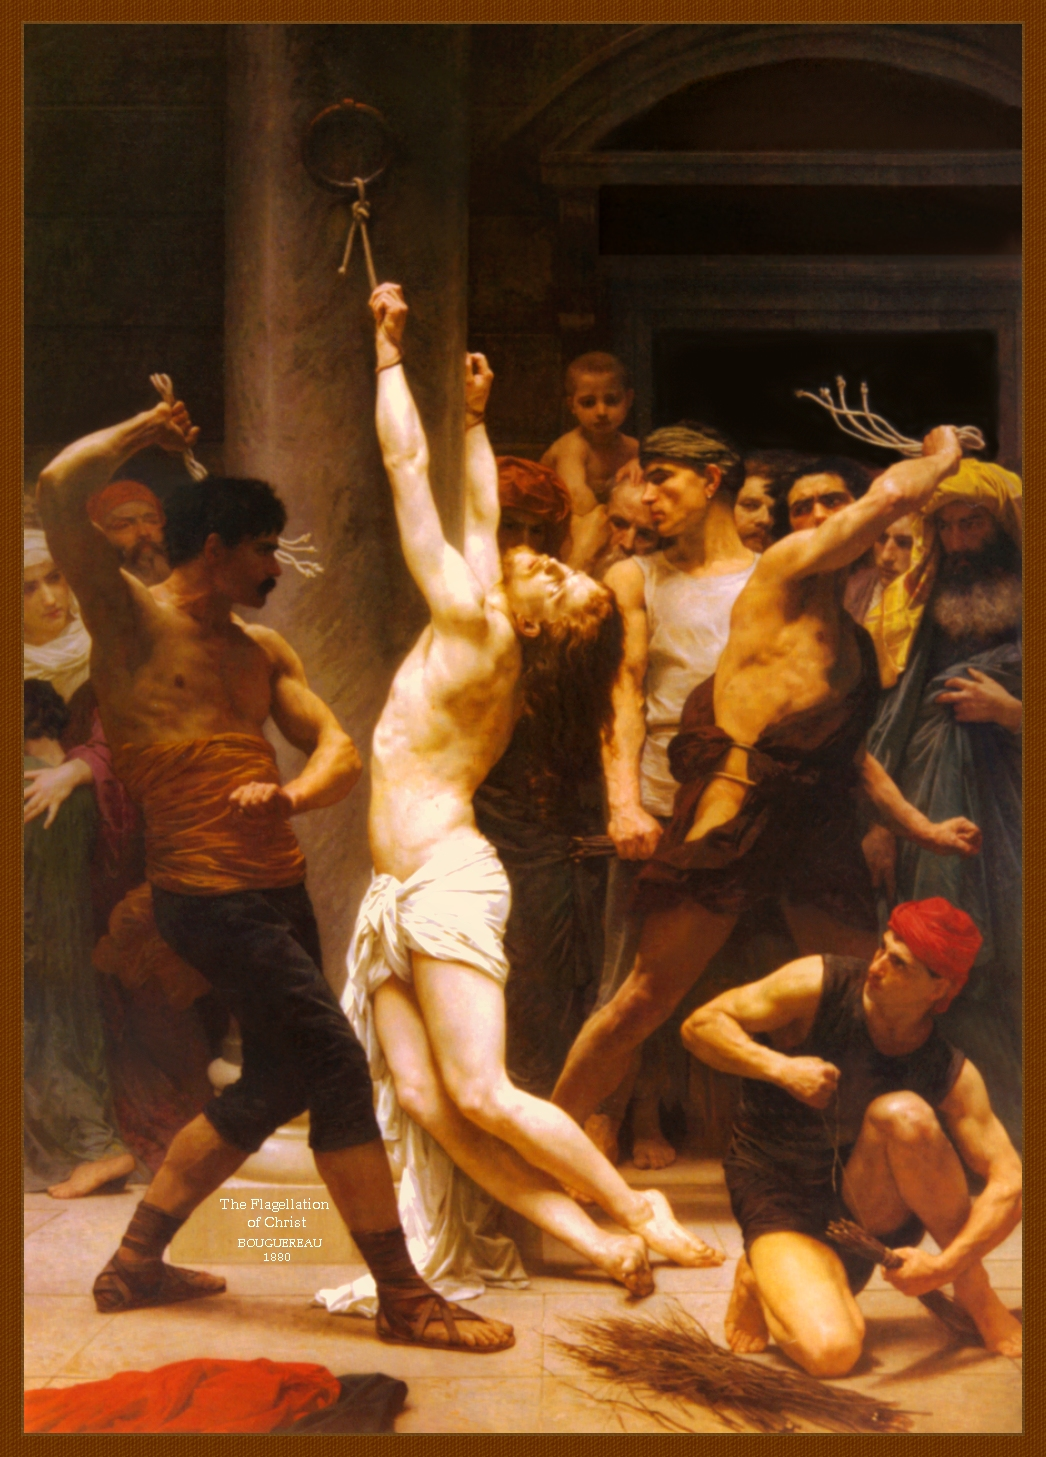 The-Flagellation-of-Christ-by-Bouguerreau-1880.jpg